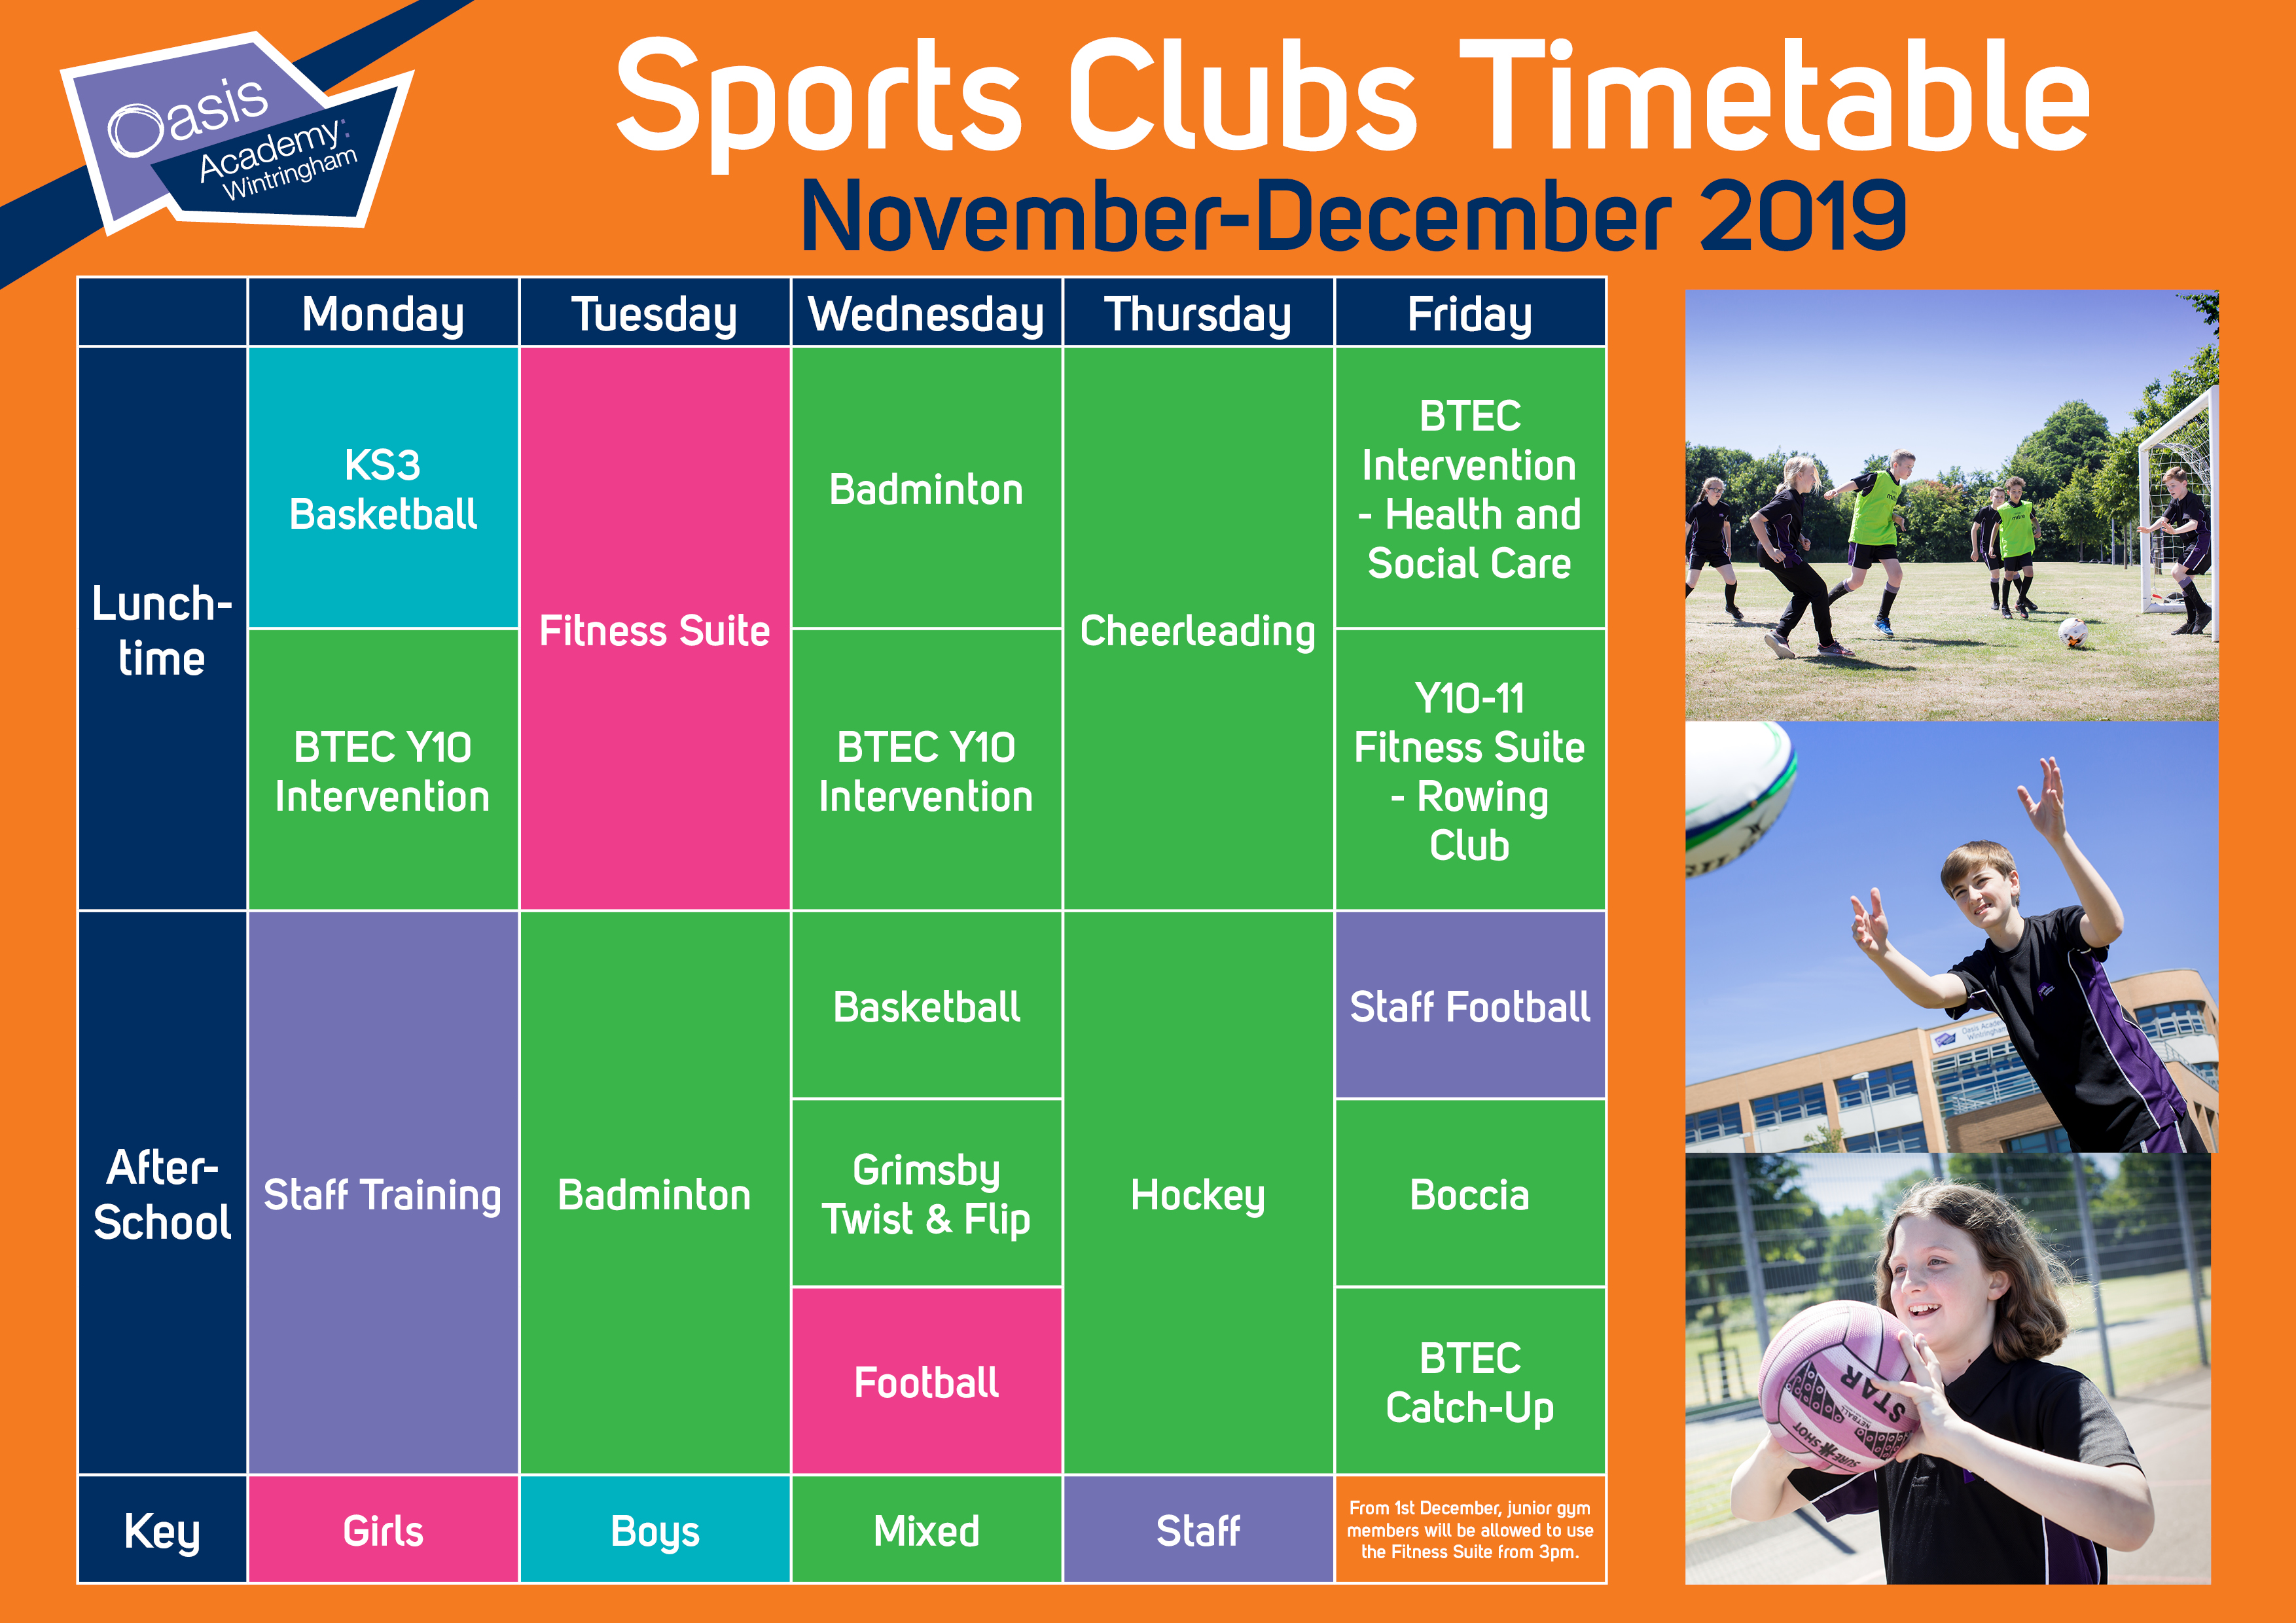 We have a new Sports Clubs Timetable starting next week!